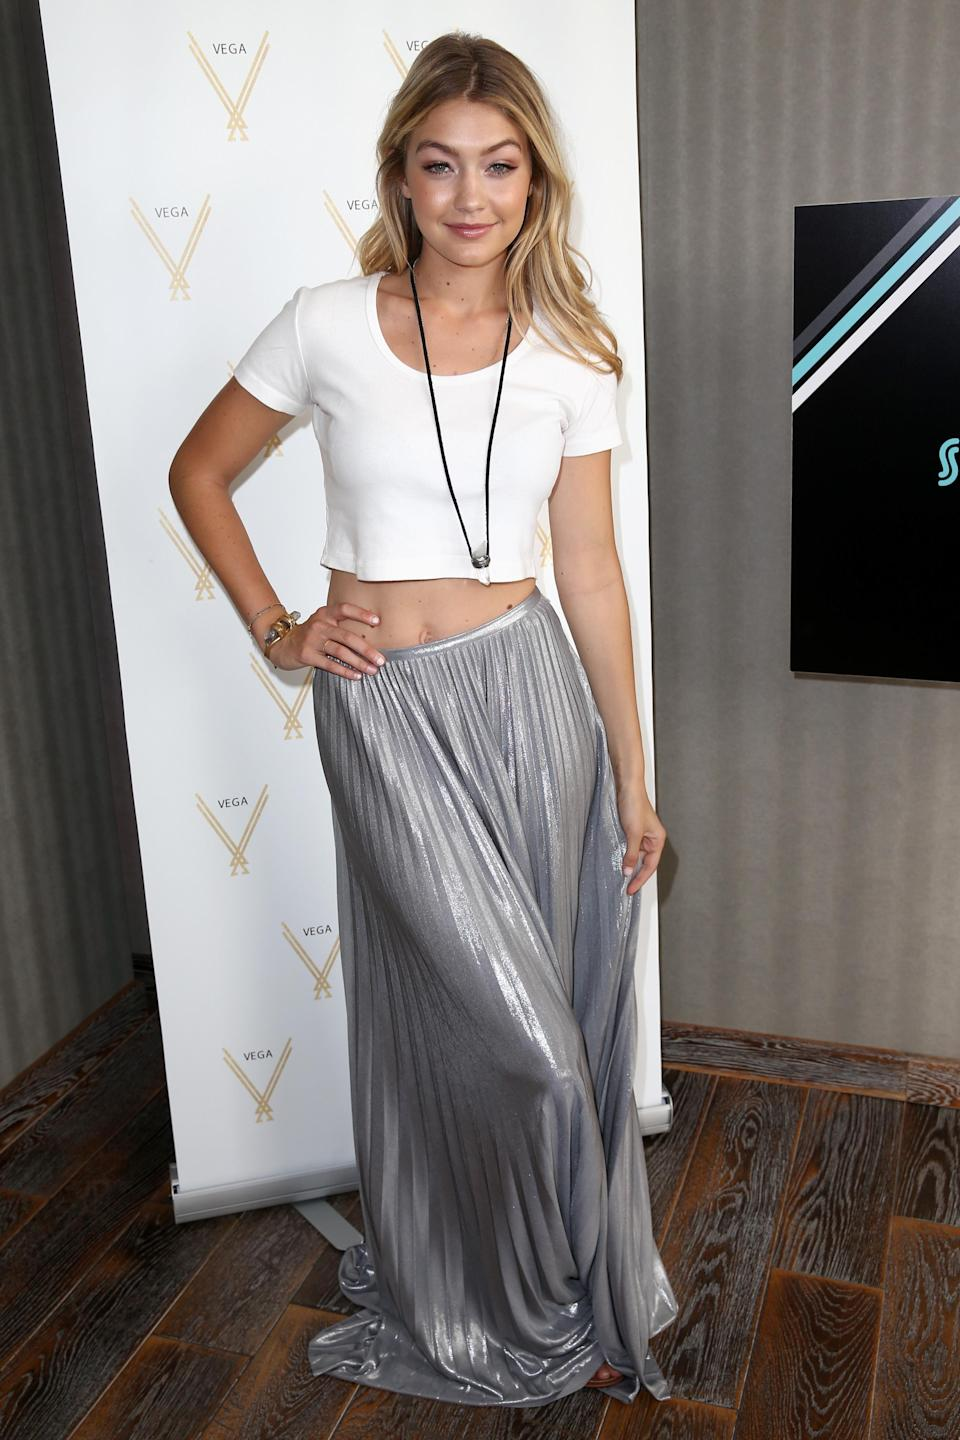 How can we get our hands on this silver skirt?